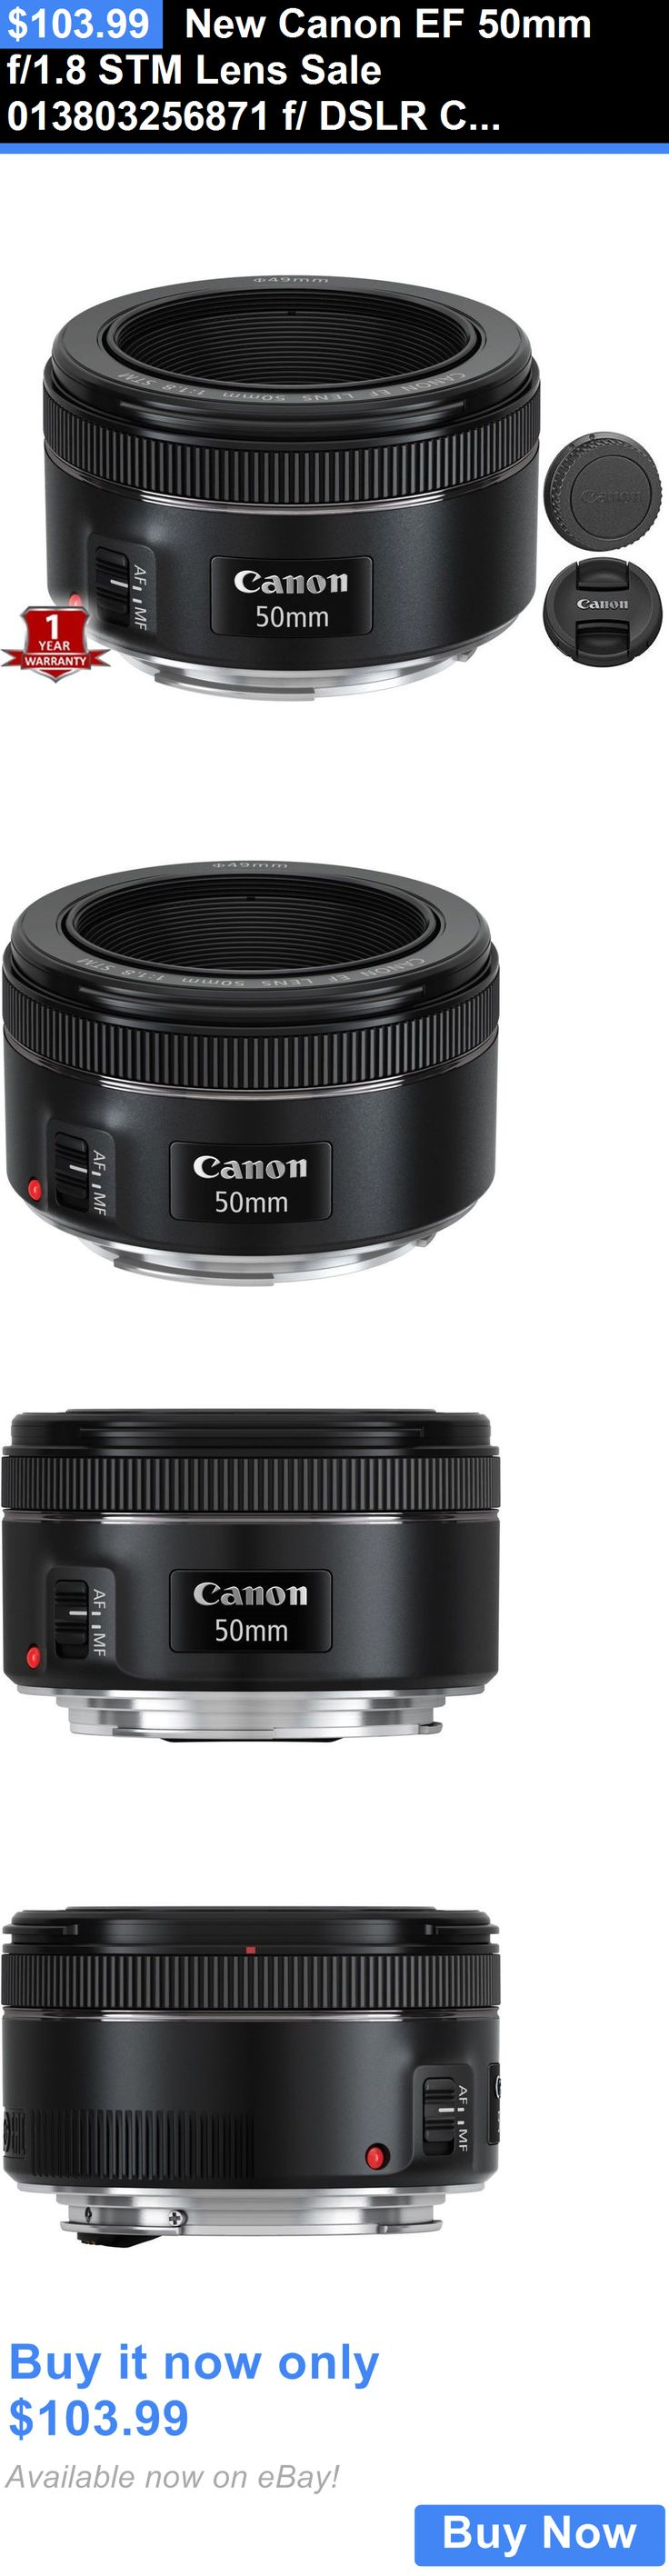 photo and video: New Canon Ef 50Mm F/1.8 Stm Lens Sale 013803256871 F/ Dslr Cameras BUY IT NOW ONLY: $103.99